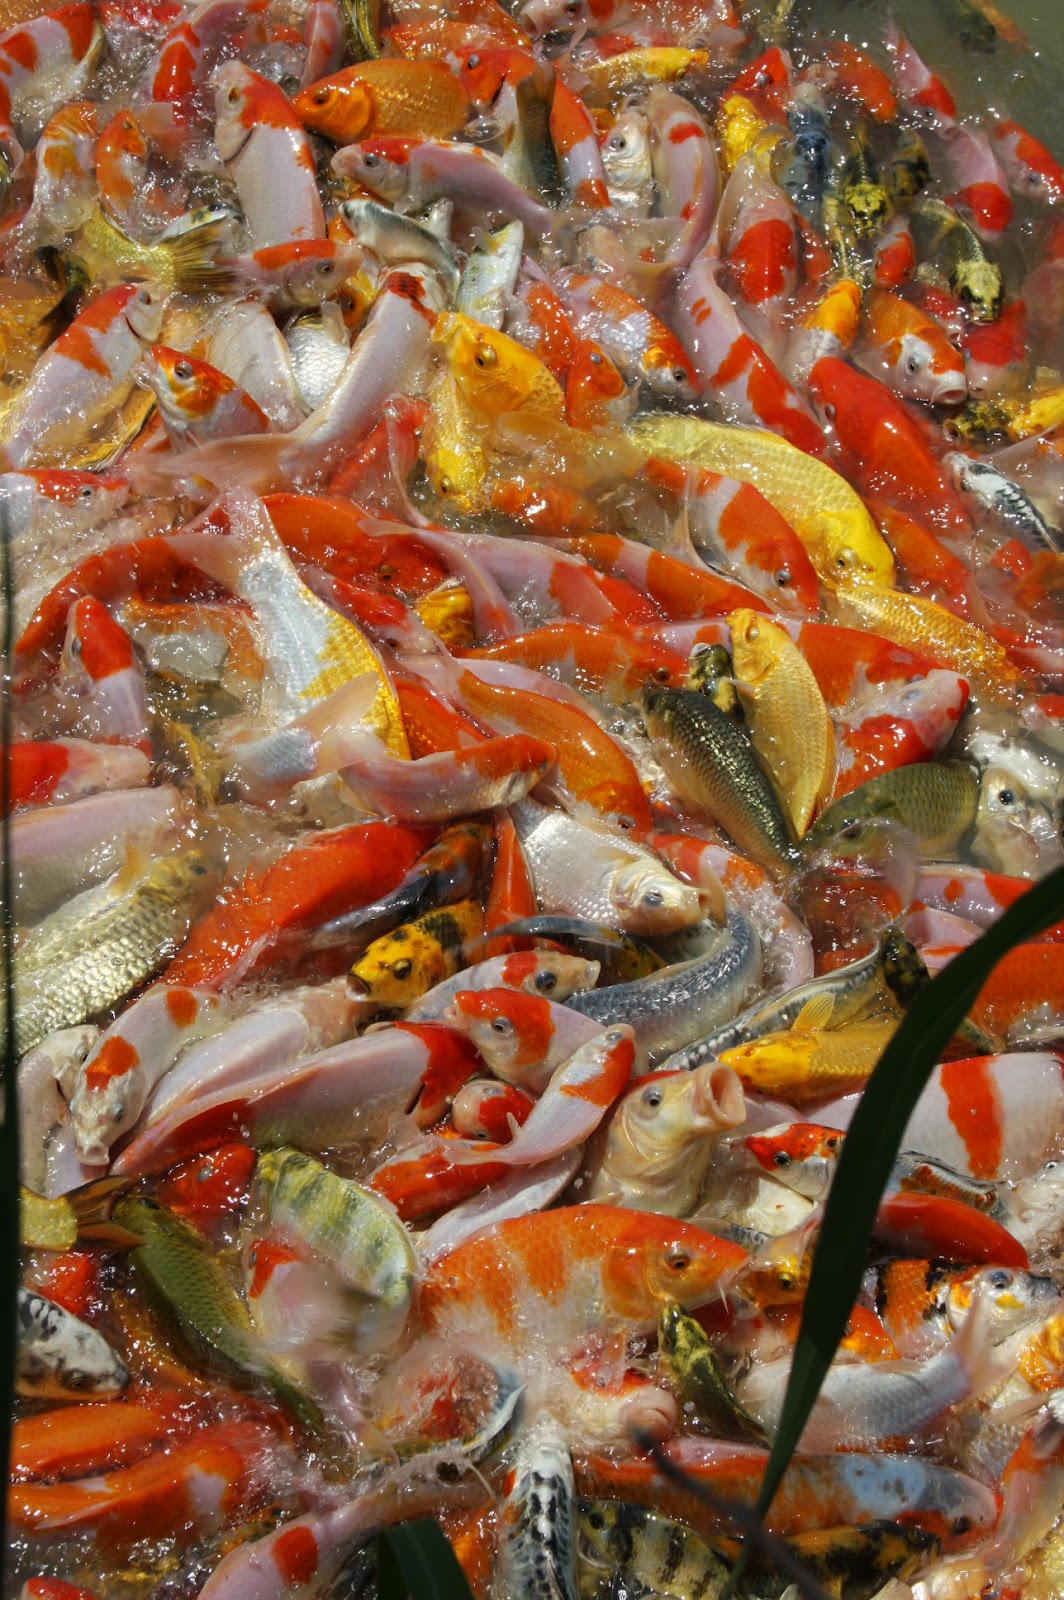 The blackwater blog butterfly koi for sale at blackwater for Niigata koi food